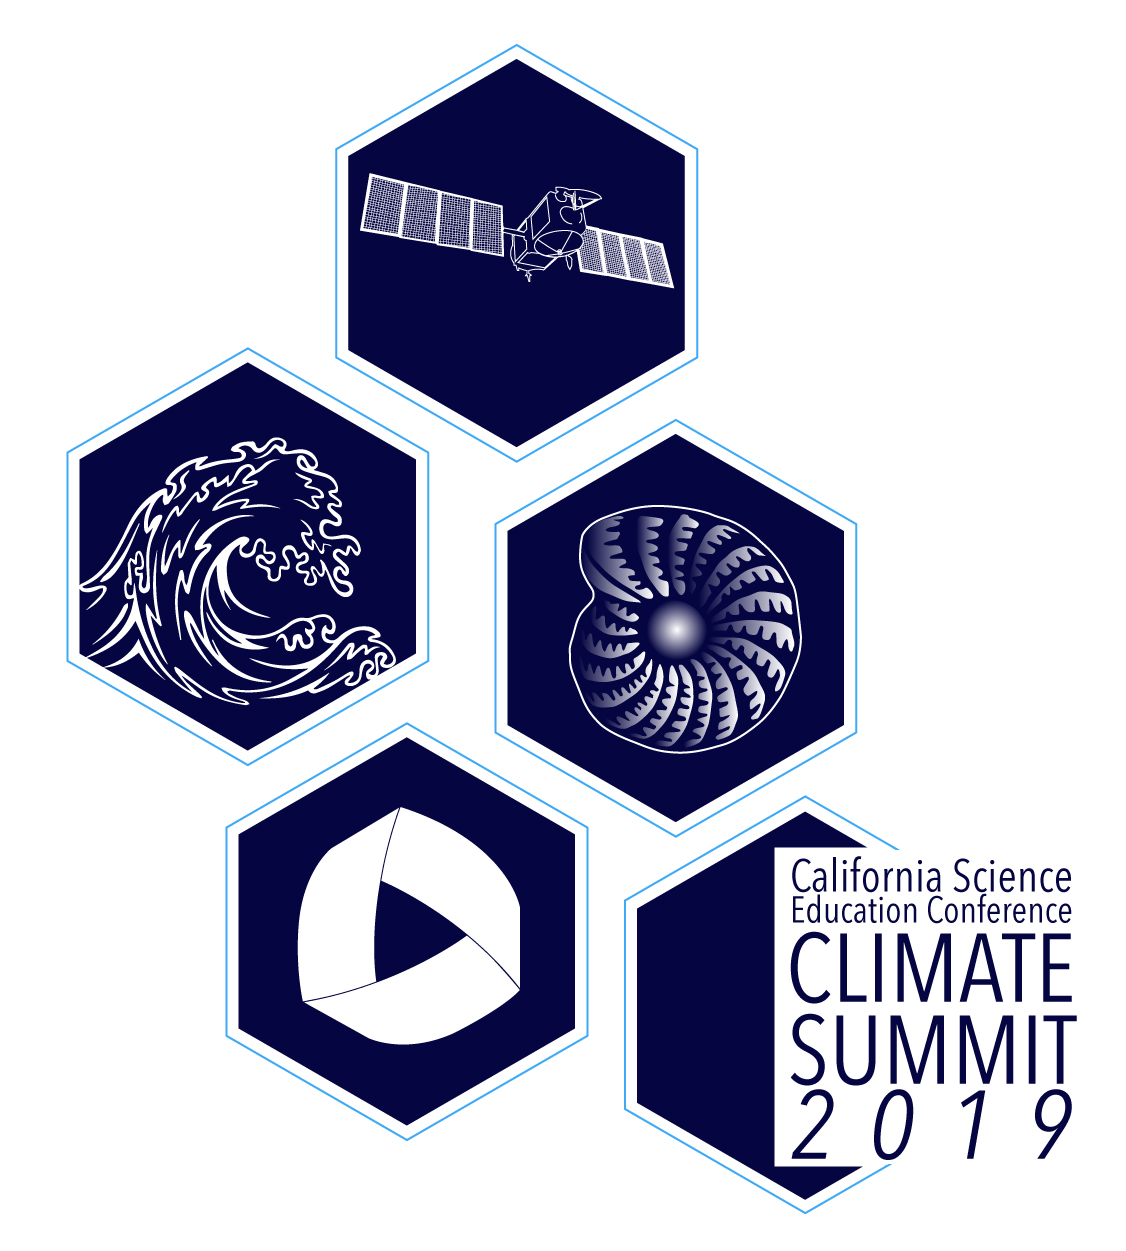 Climate Summit Logo 2019